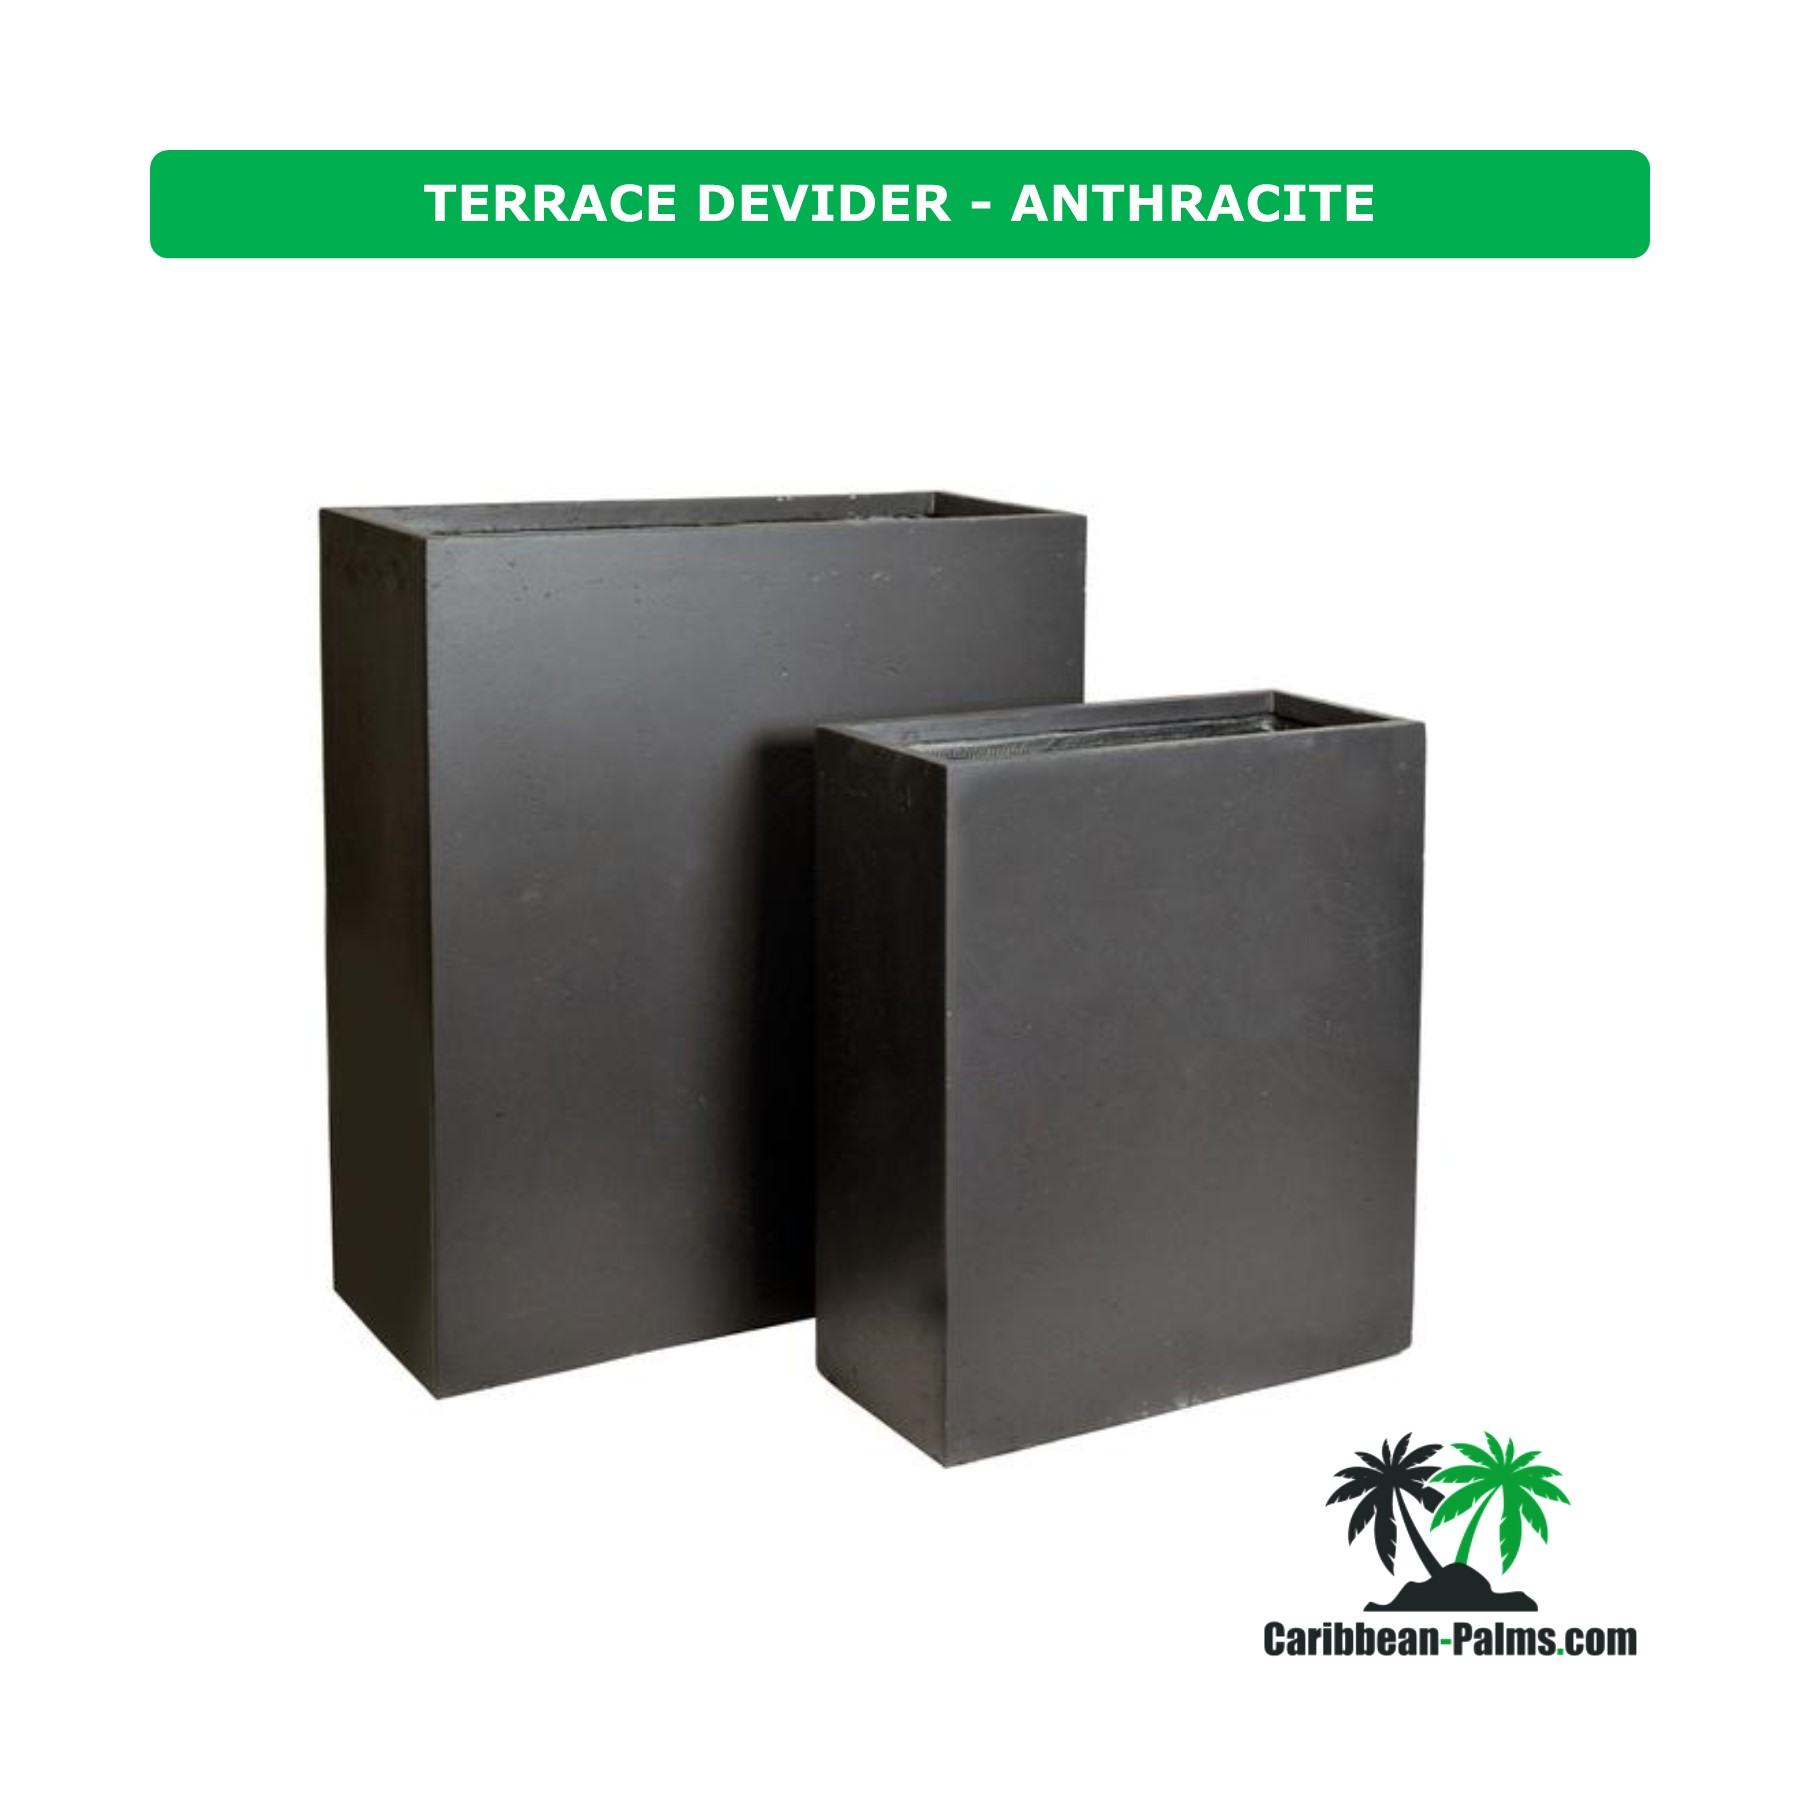 TERRACE DEVIDER ANTHRACITE